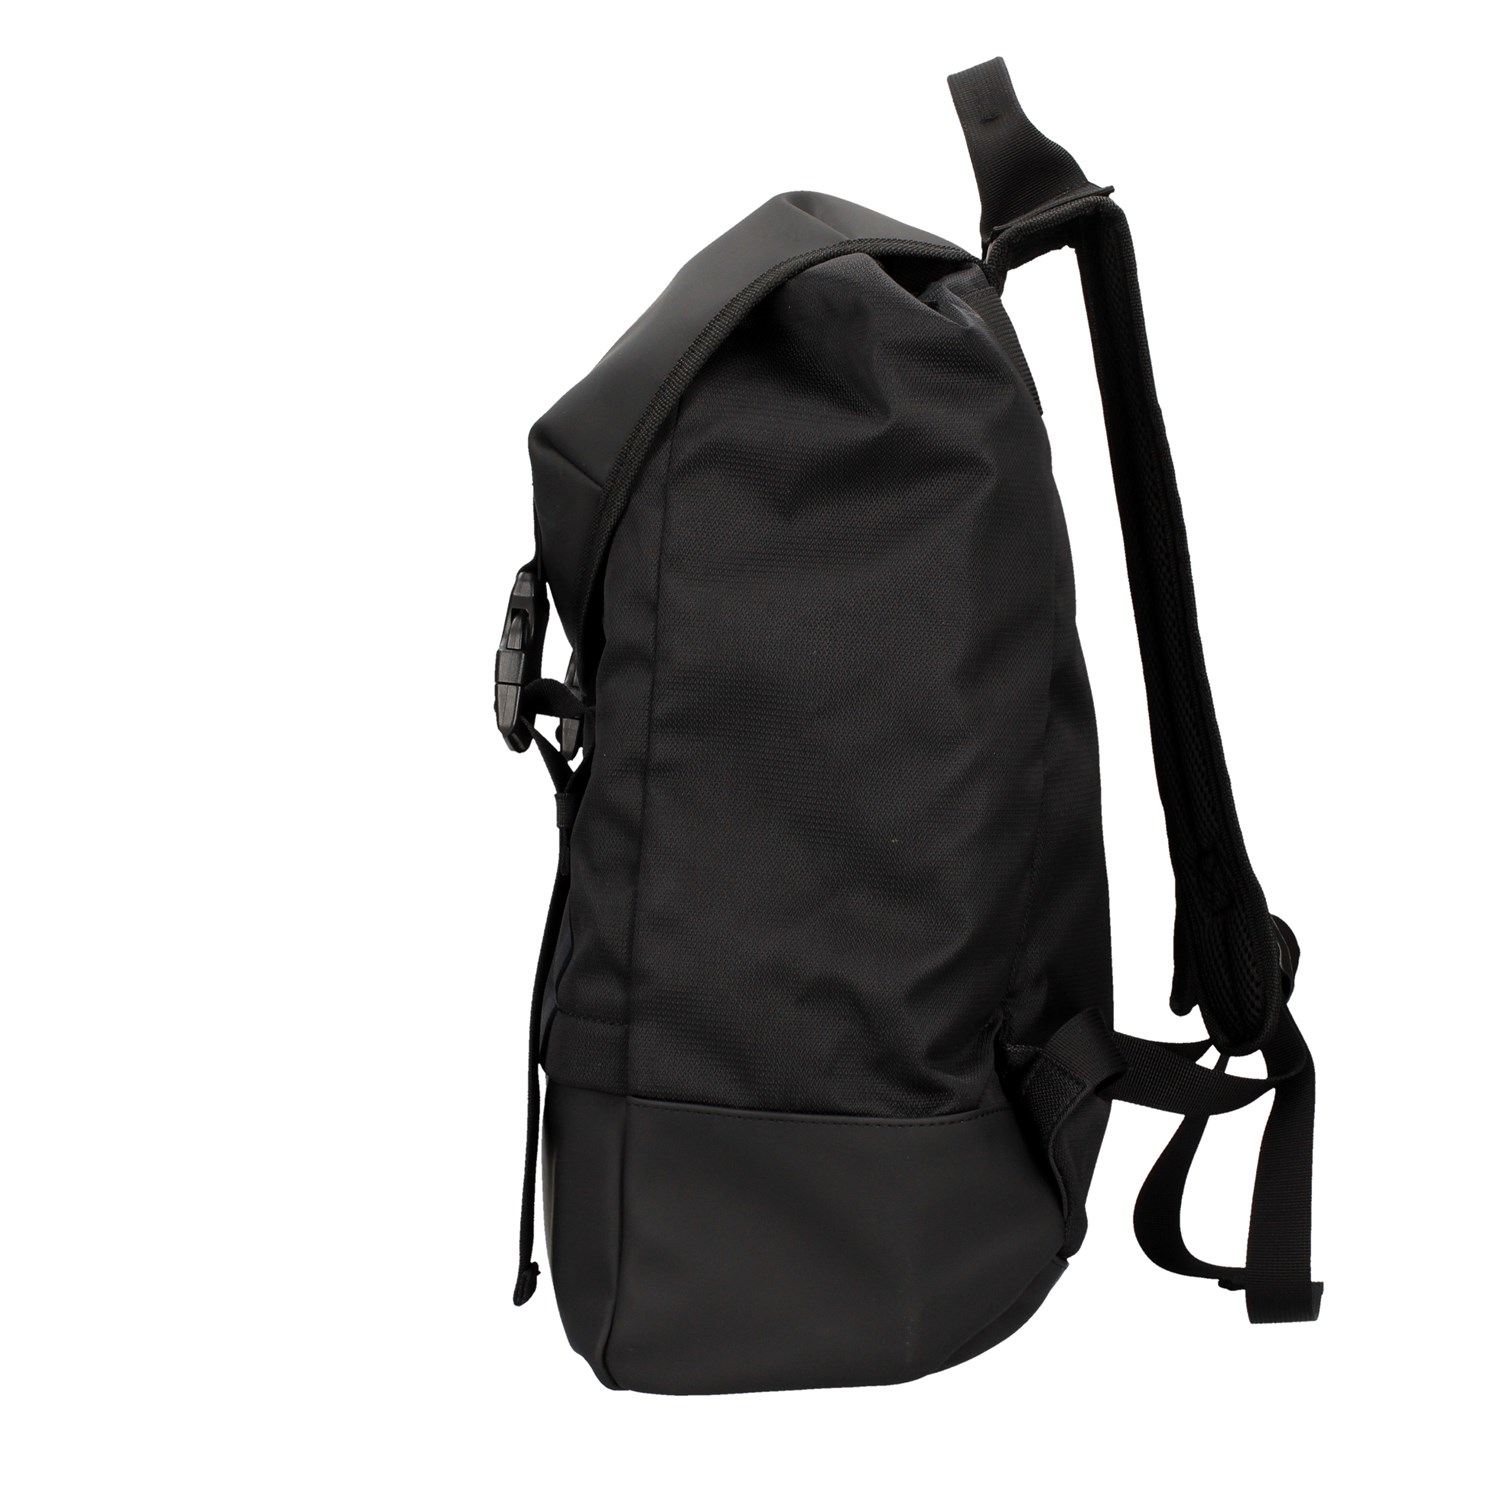 Ea7 Bags Accessories Backpacks BLACK 275881